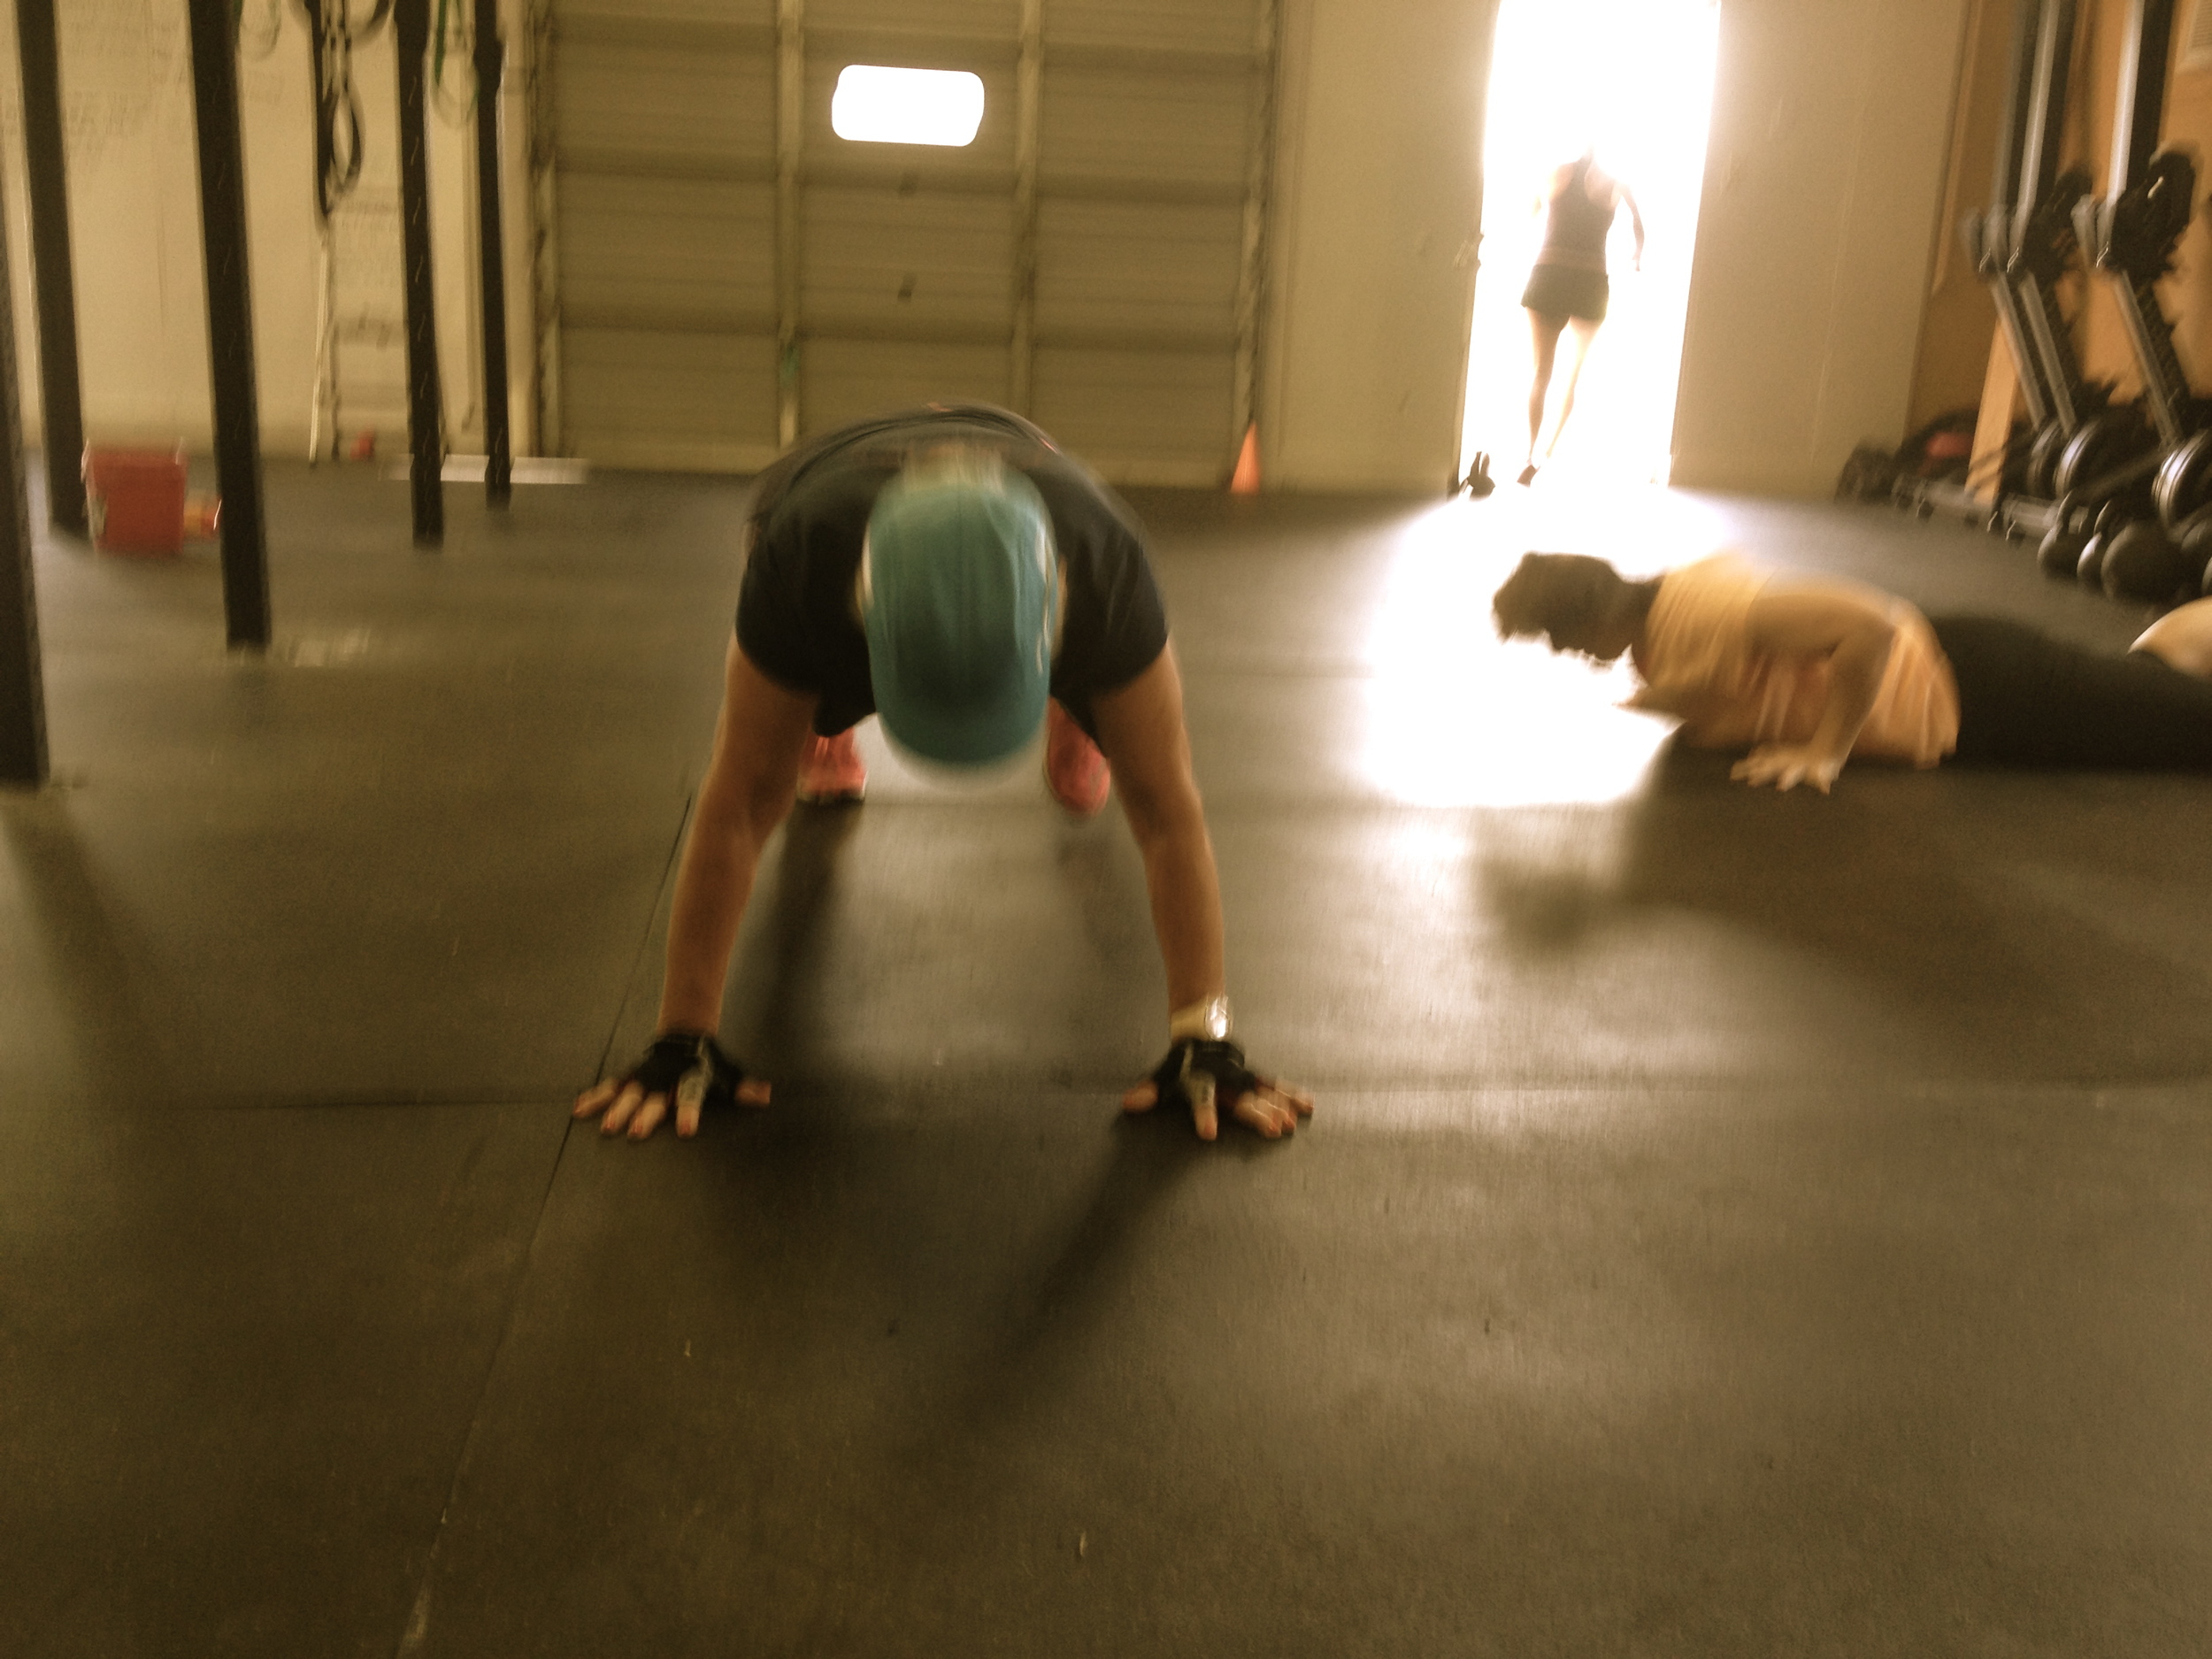 Margaret completed the workout Rx on Monday! Great work Margaret!